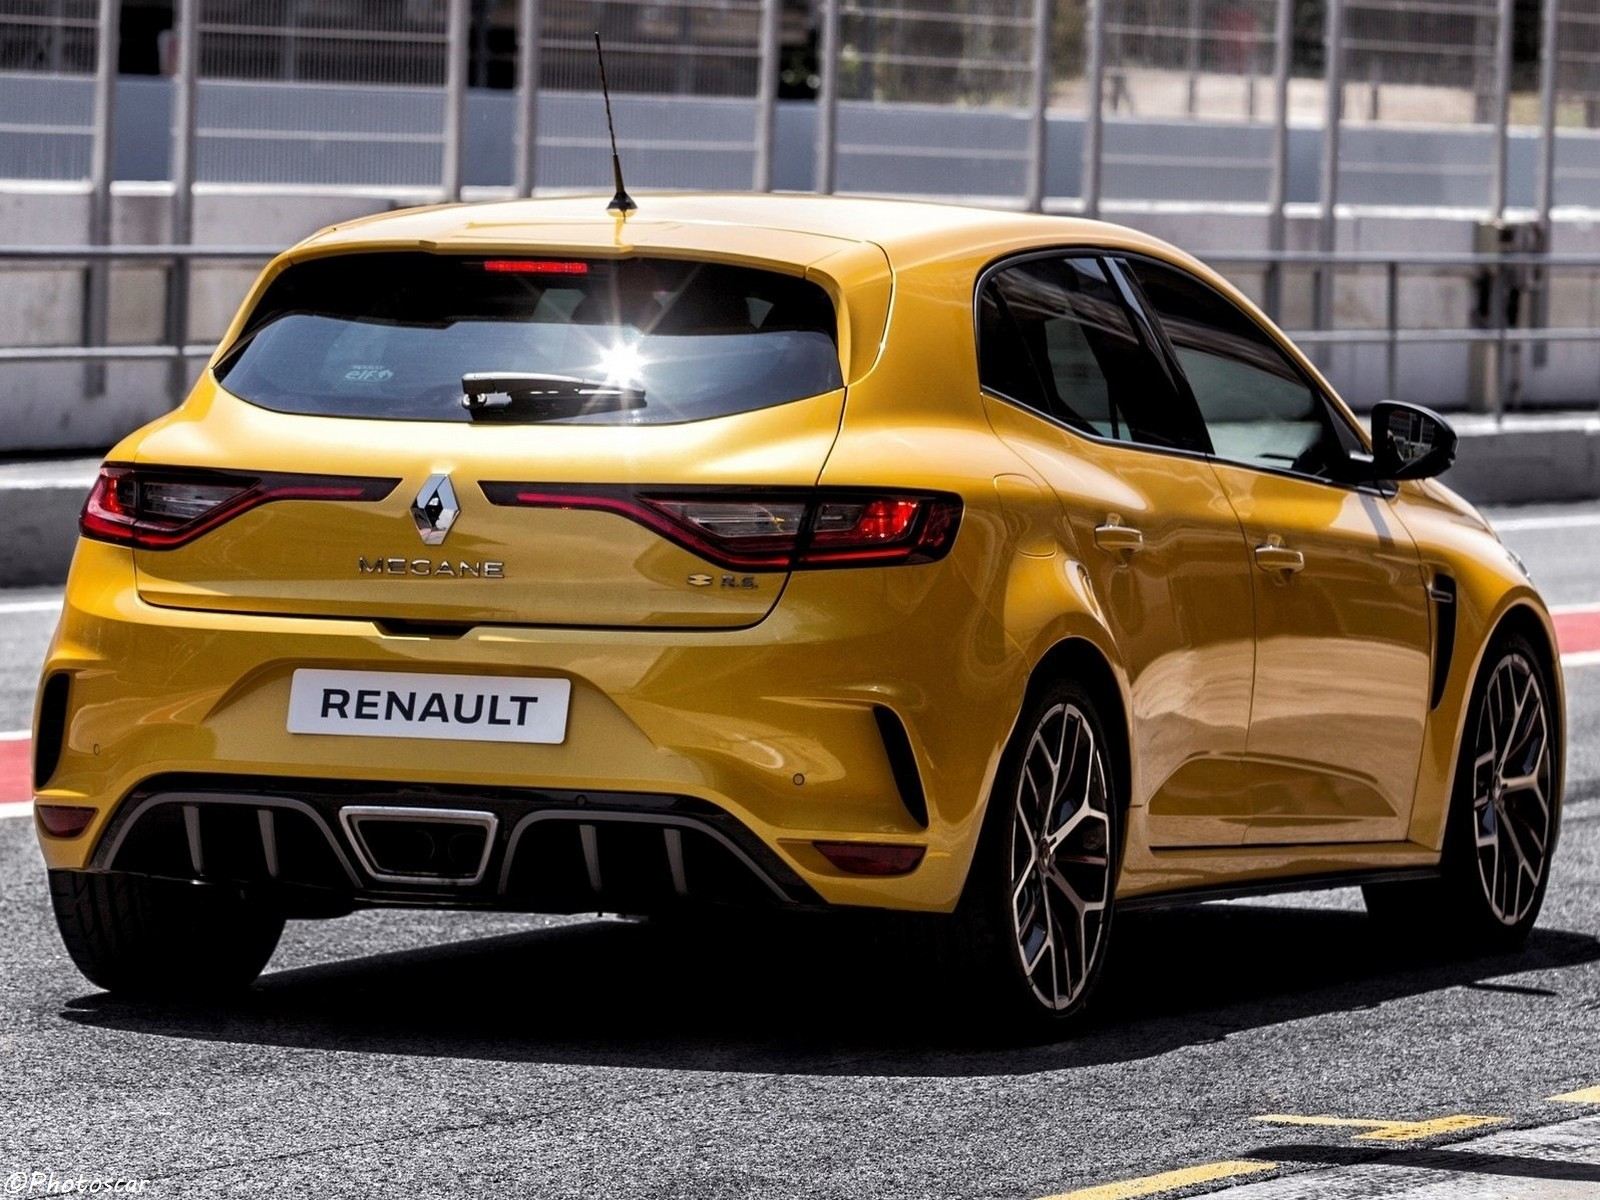 renault megane rs trophy 2019 l 39 adr naline sportive pour les circuits. Black Bedroom Furniture Sets. Home Design Ideas